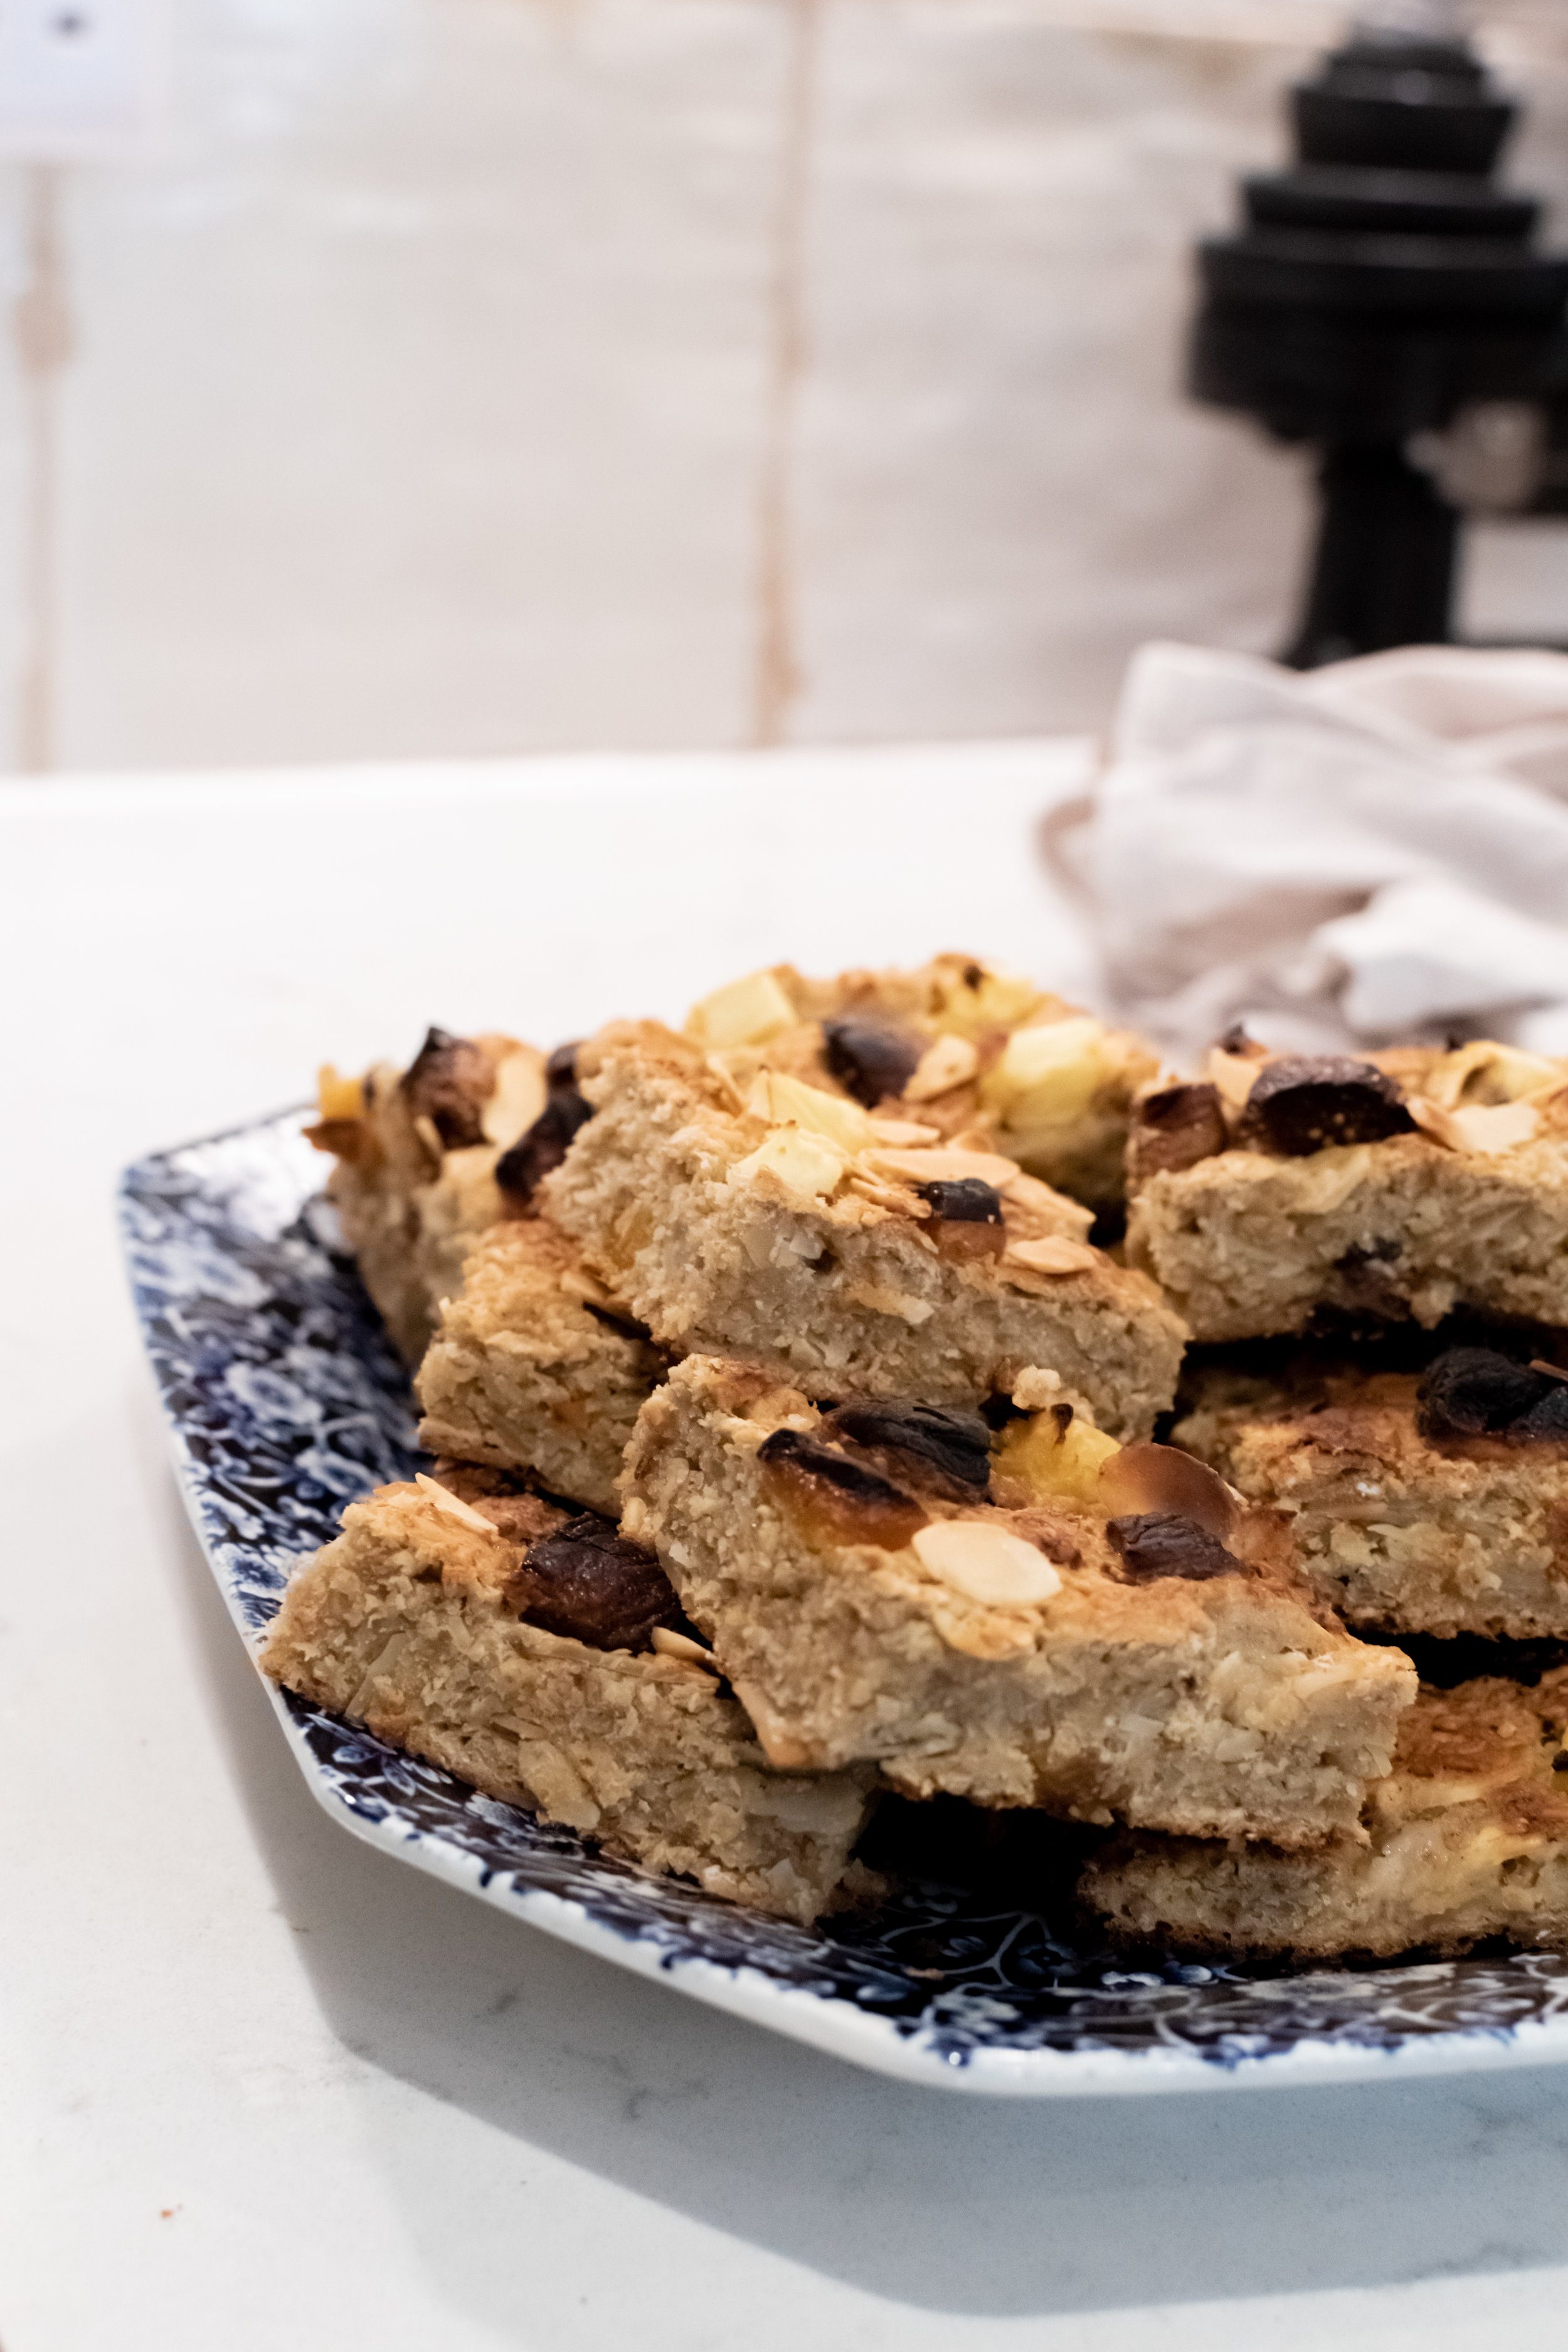 Fruity oat breakfast bars, perfect for getting toddlers to eat more fruit.